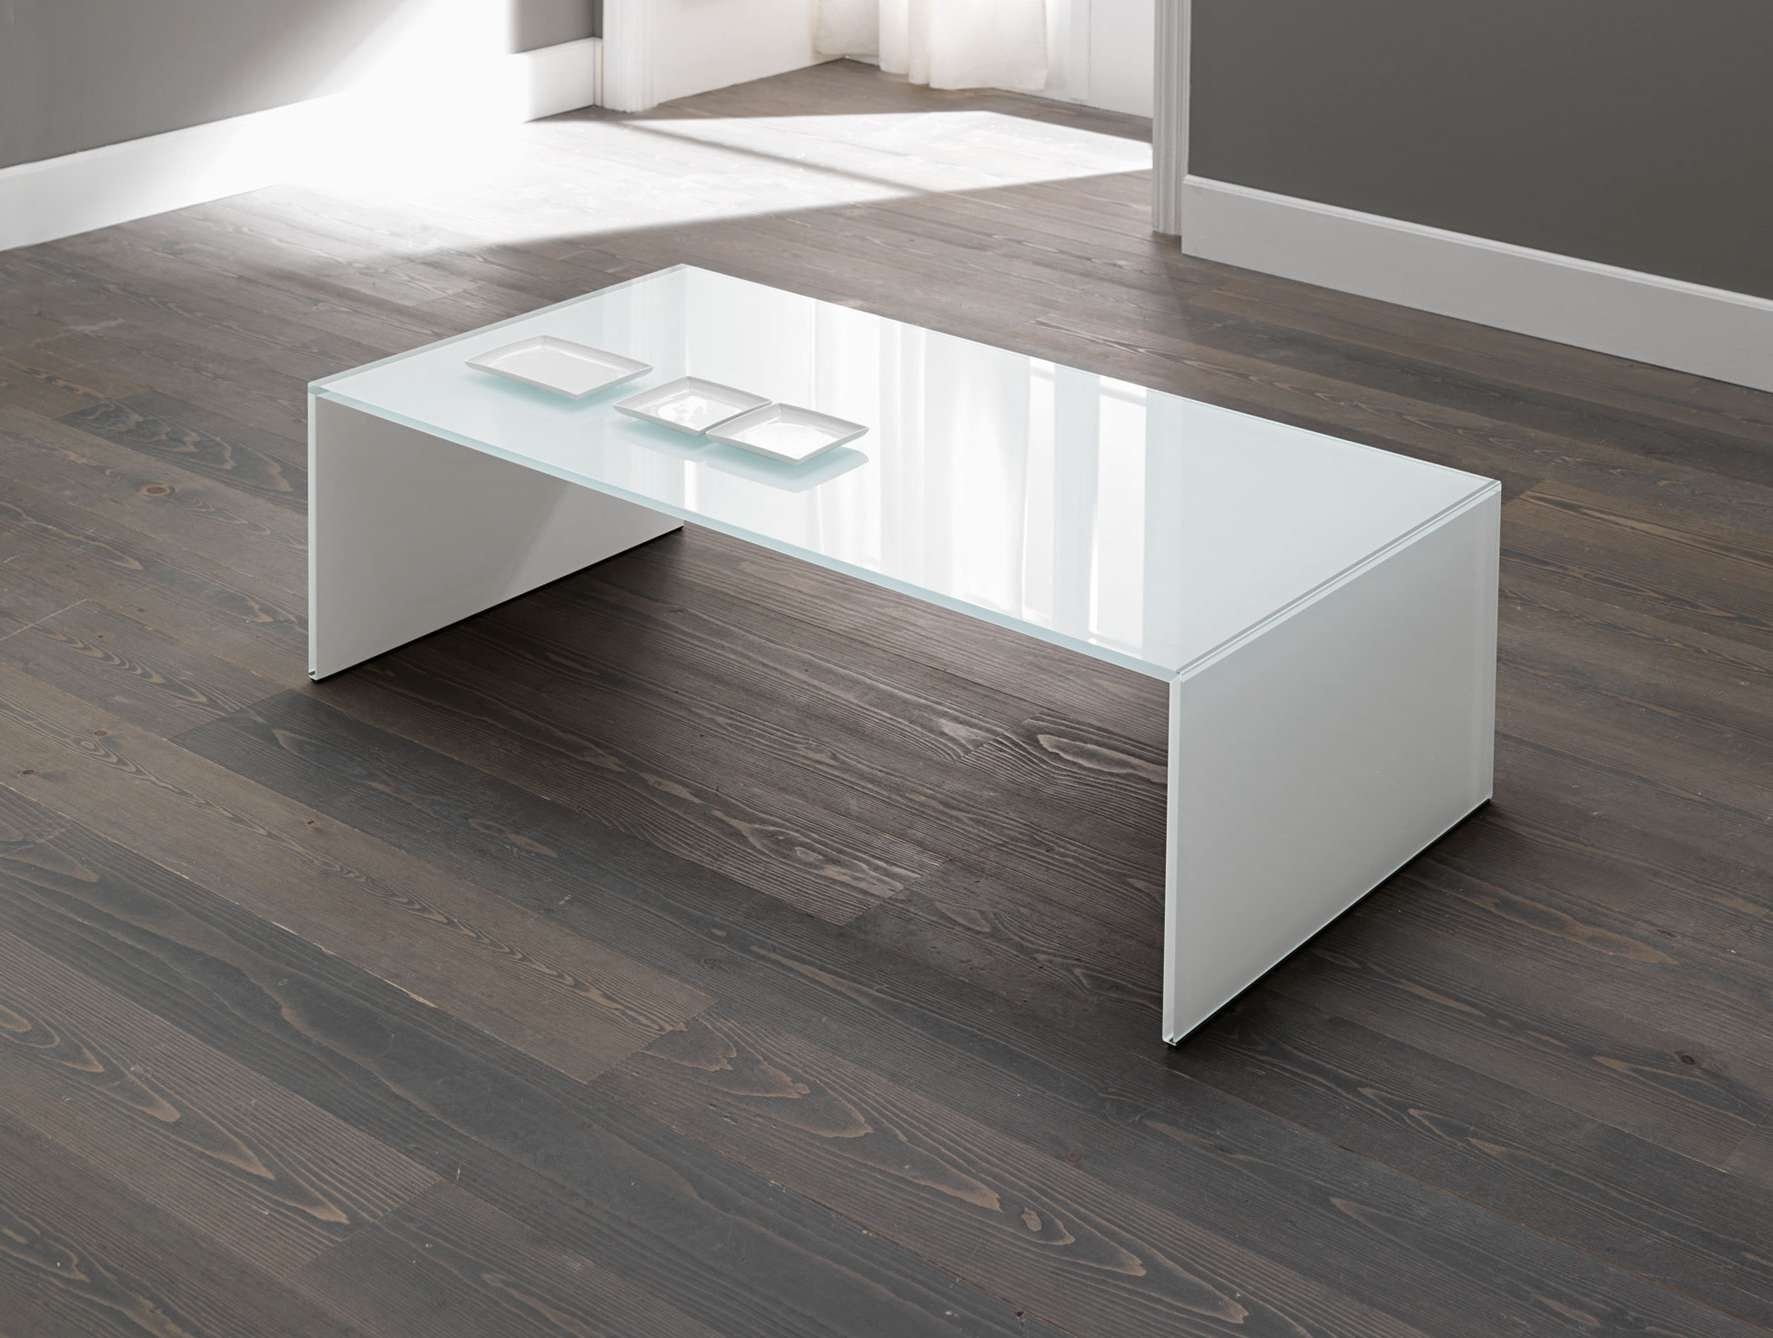 Choose Ideal Modern Glass Coffee Table – Matt And Jentry Home Design Intended For Current All Glass Coffee Tables (View 14 of 20)